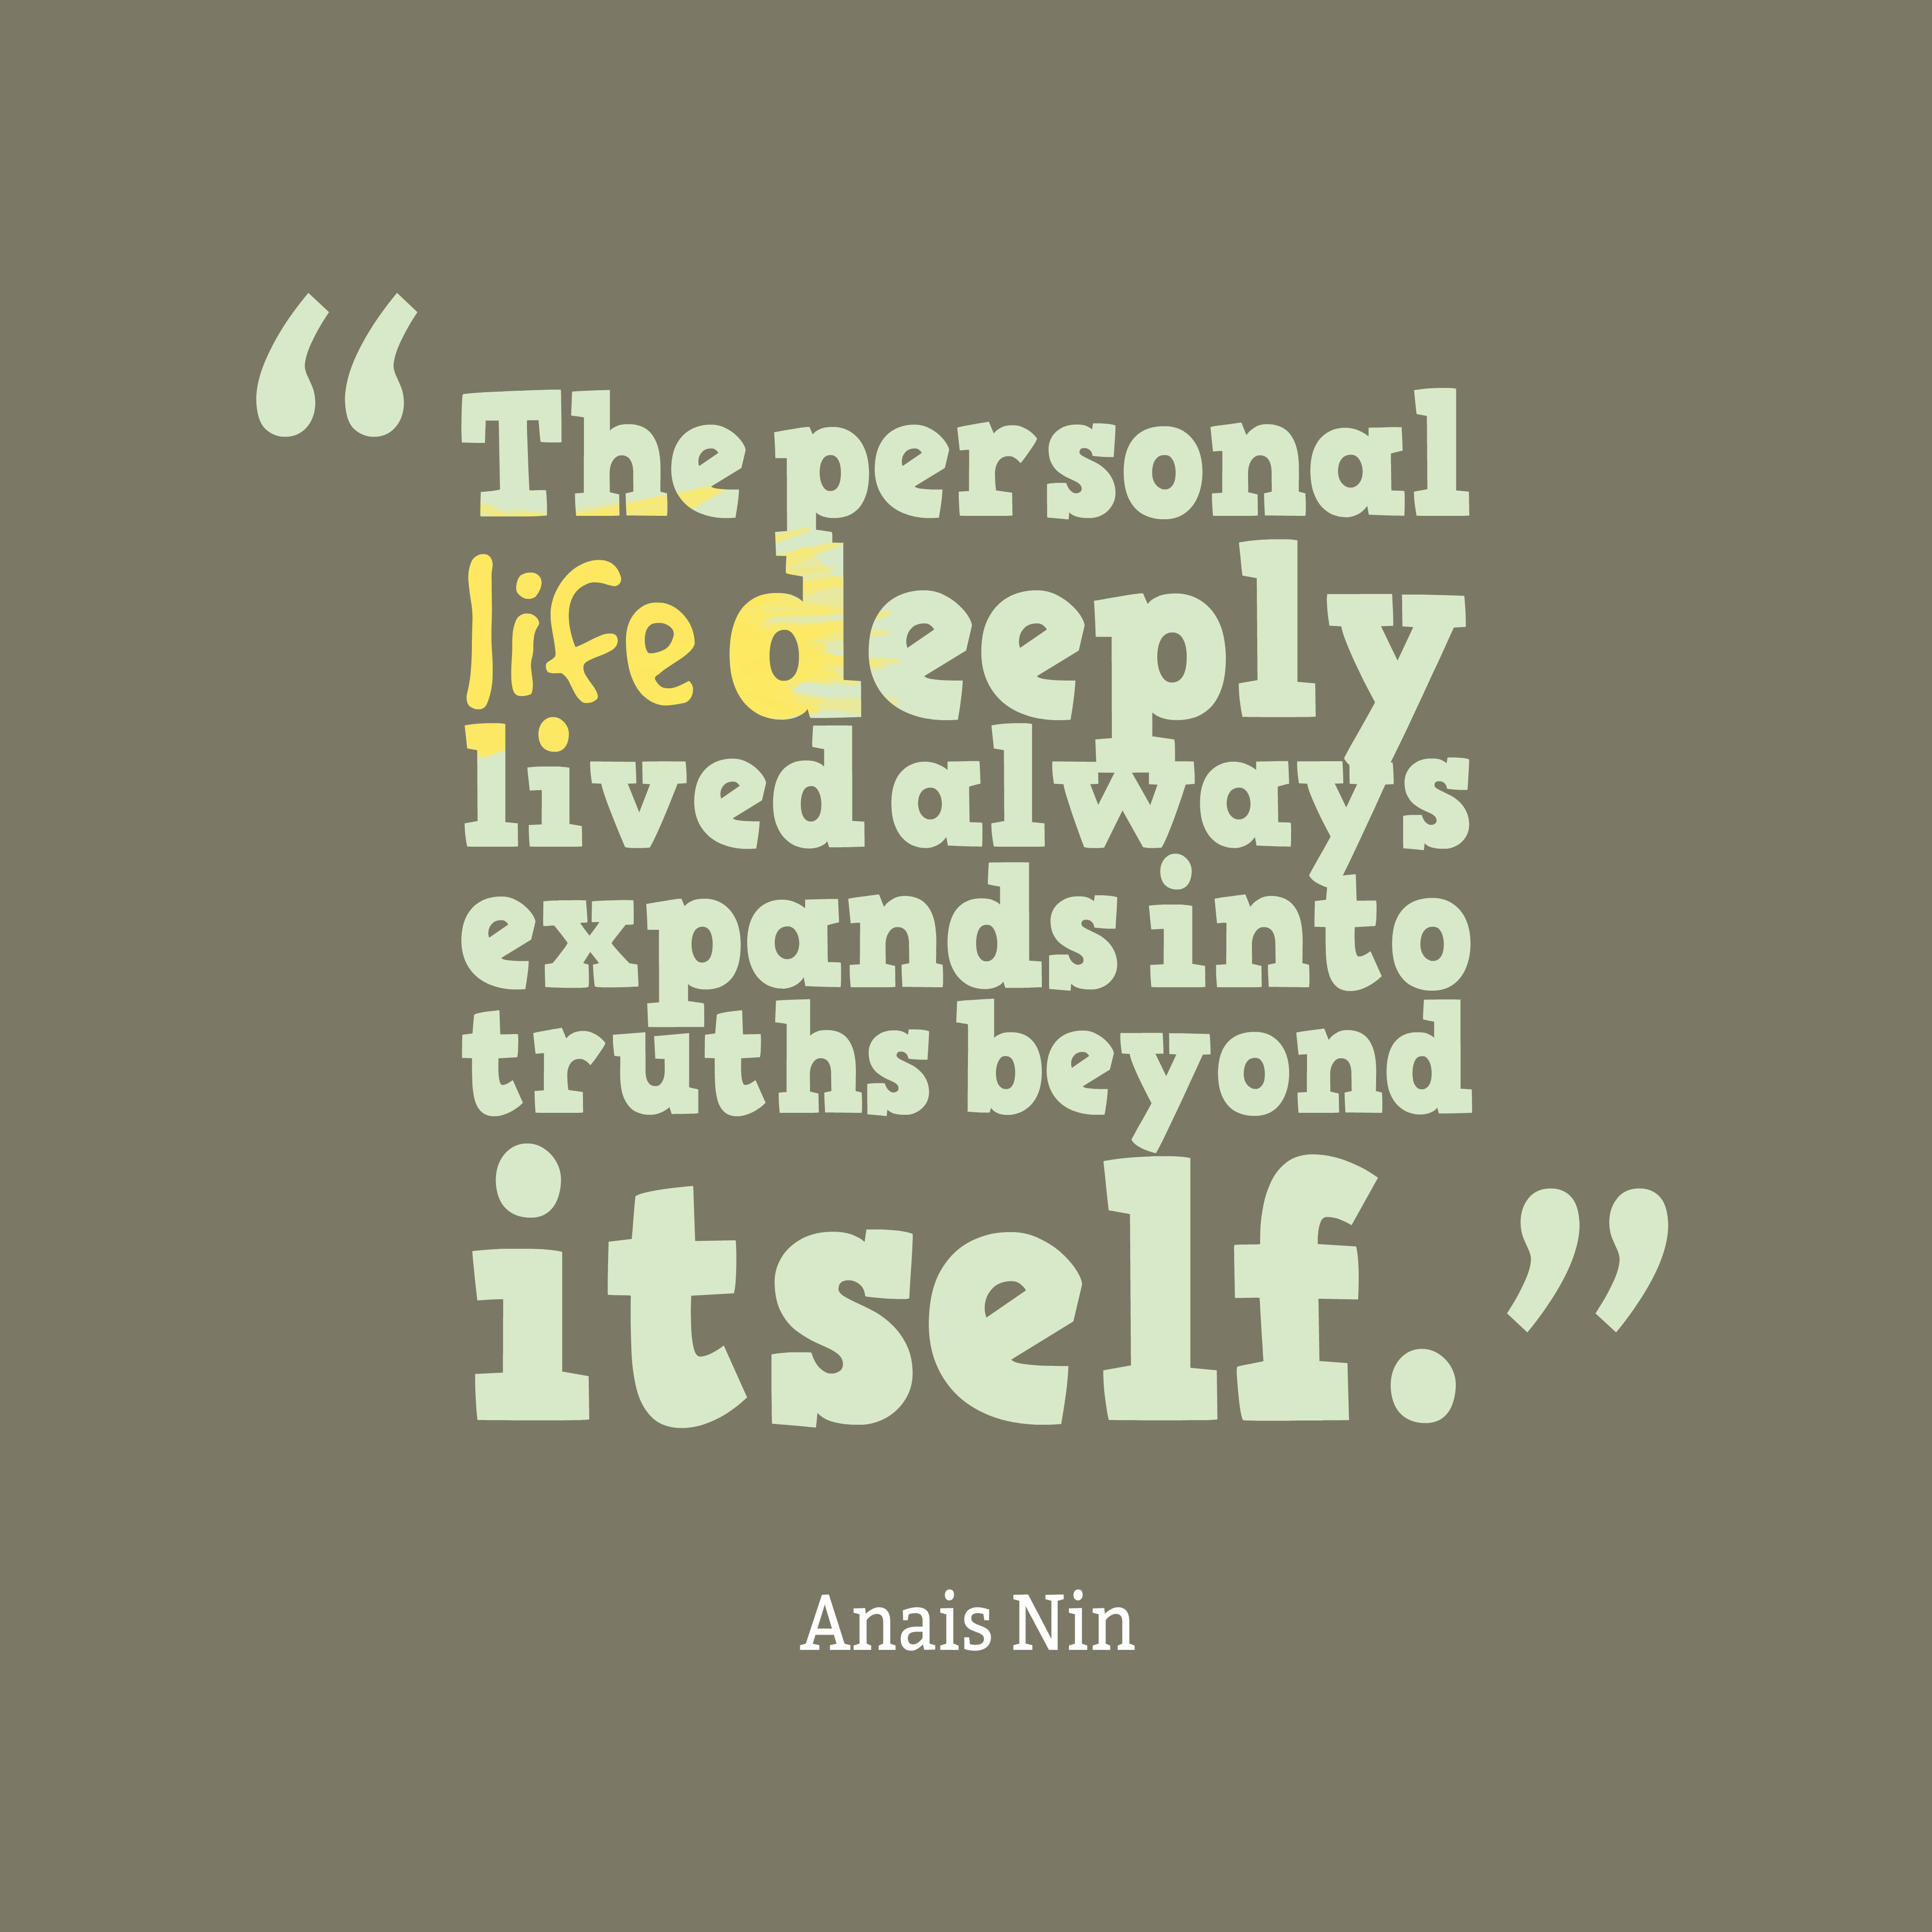 personal quotes anais nin quote deeply always lived using quotescover resolution truths expands into redesign text